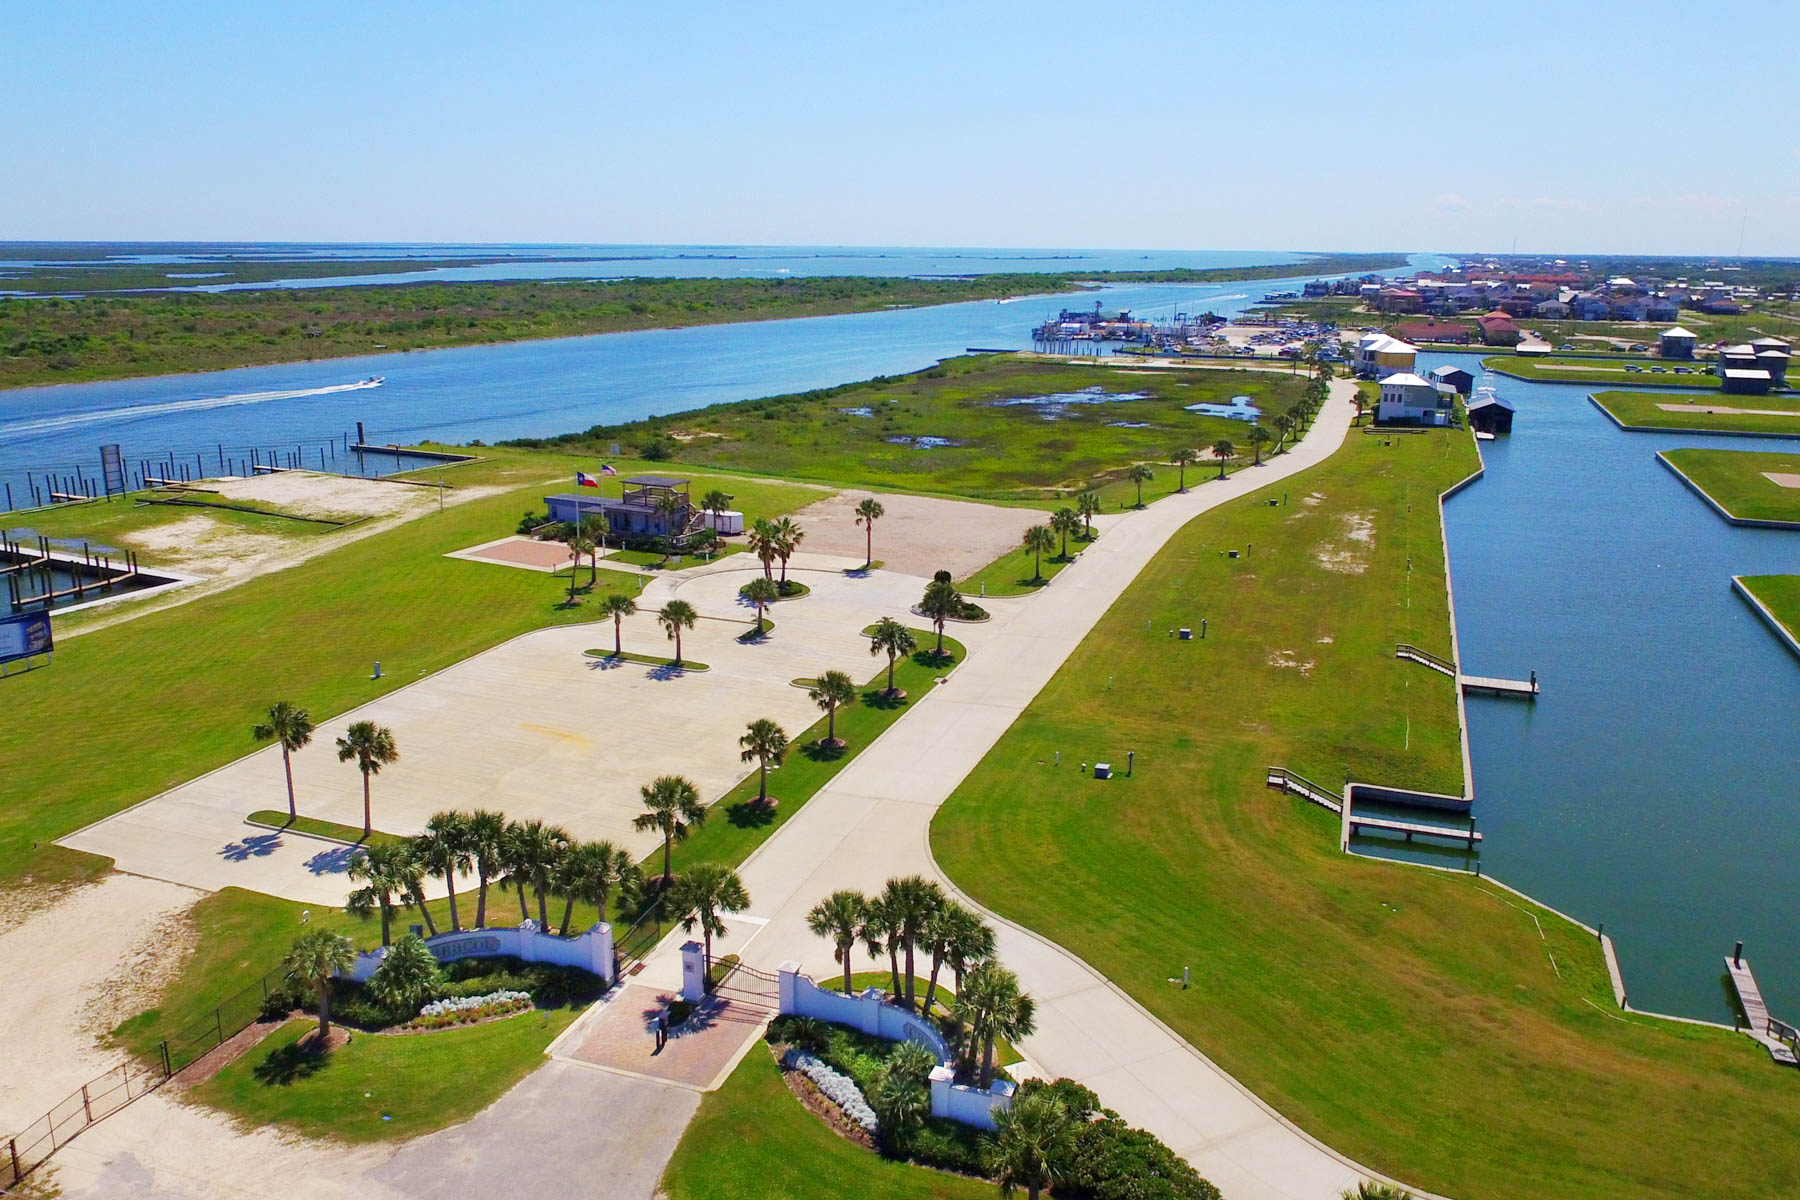 Land for Sale at Build your dream home on the Texas Coast 26 Caracol Dr Port O Connor, Texas 77982 United States